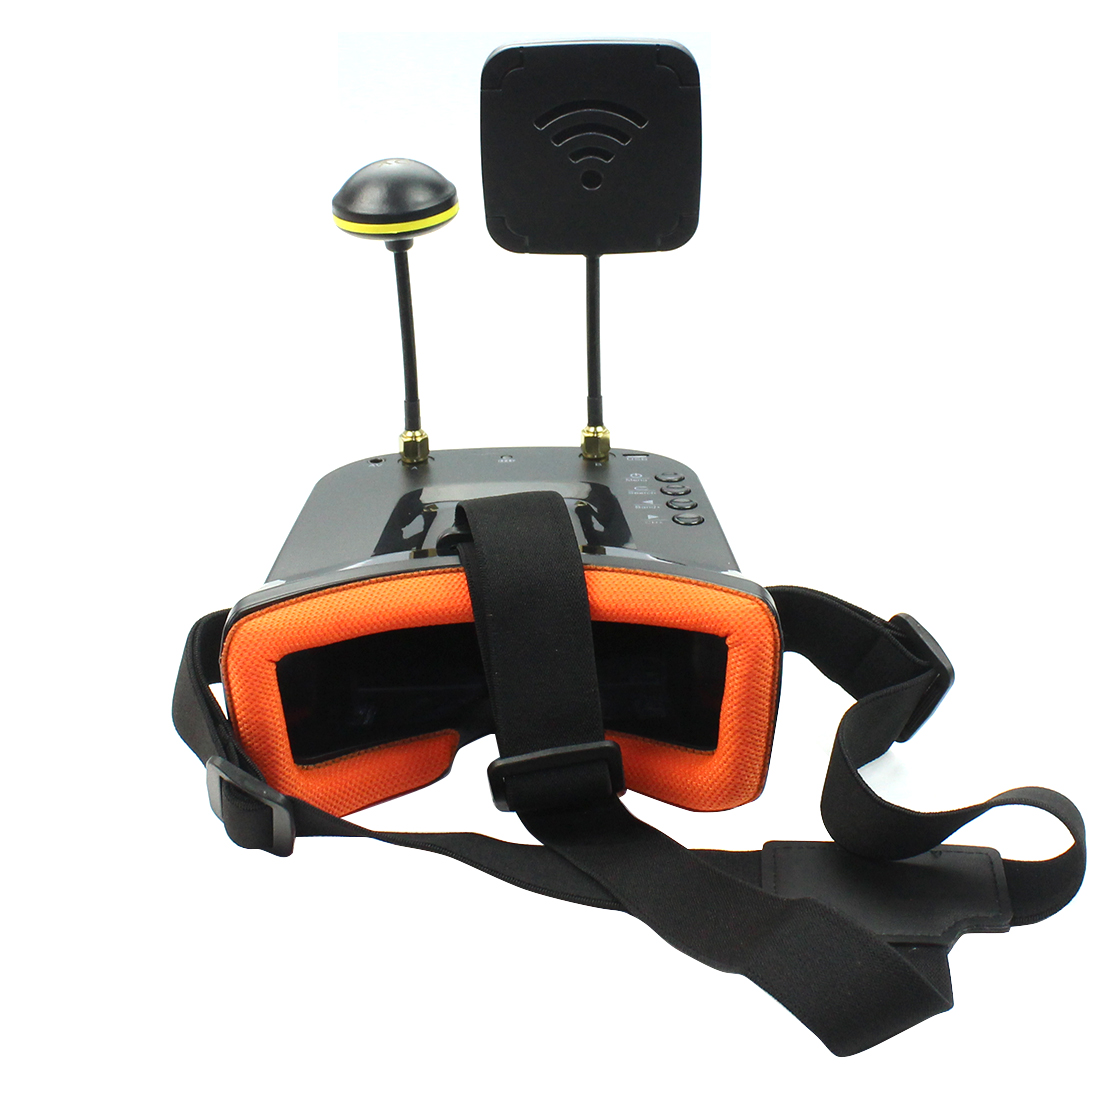 Mini FPV Goggles With Mushroom Antenna Panel Antenna 3 inch <font><b>480</b></font> x <font><b>320</b></font> Display Double Antenna 5.8G 40CH Built-in 3.7V for Racing image